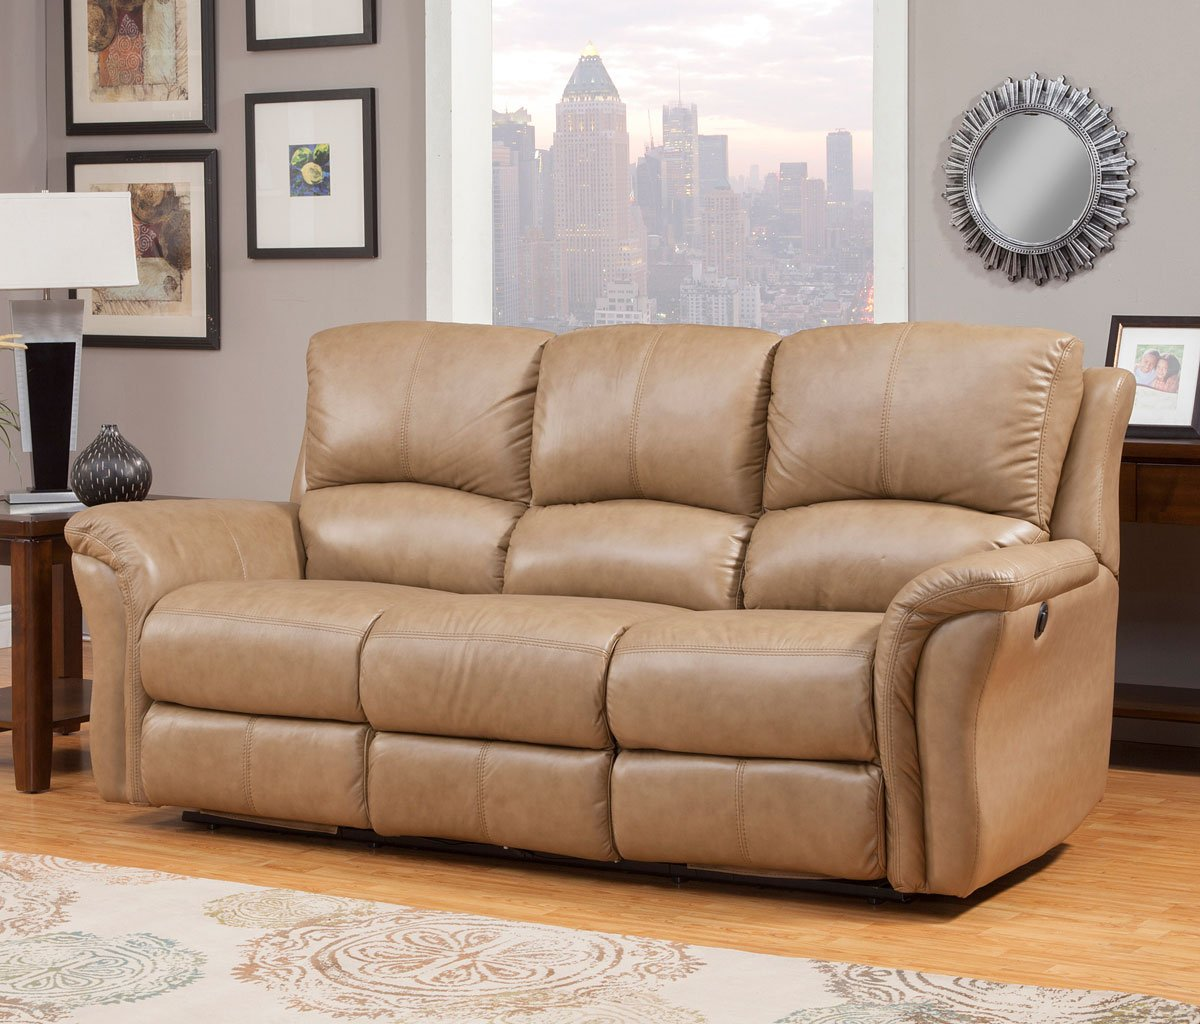 Swell Lewis Power Reclining Sofa Camel Squirreltailoven Fun Painted Chair Ideas Images Squirreltailovenorg